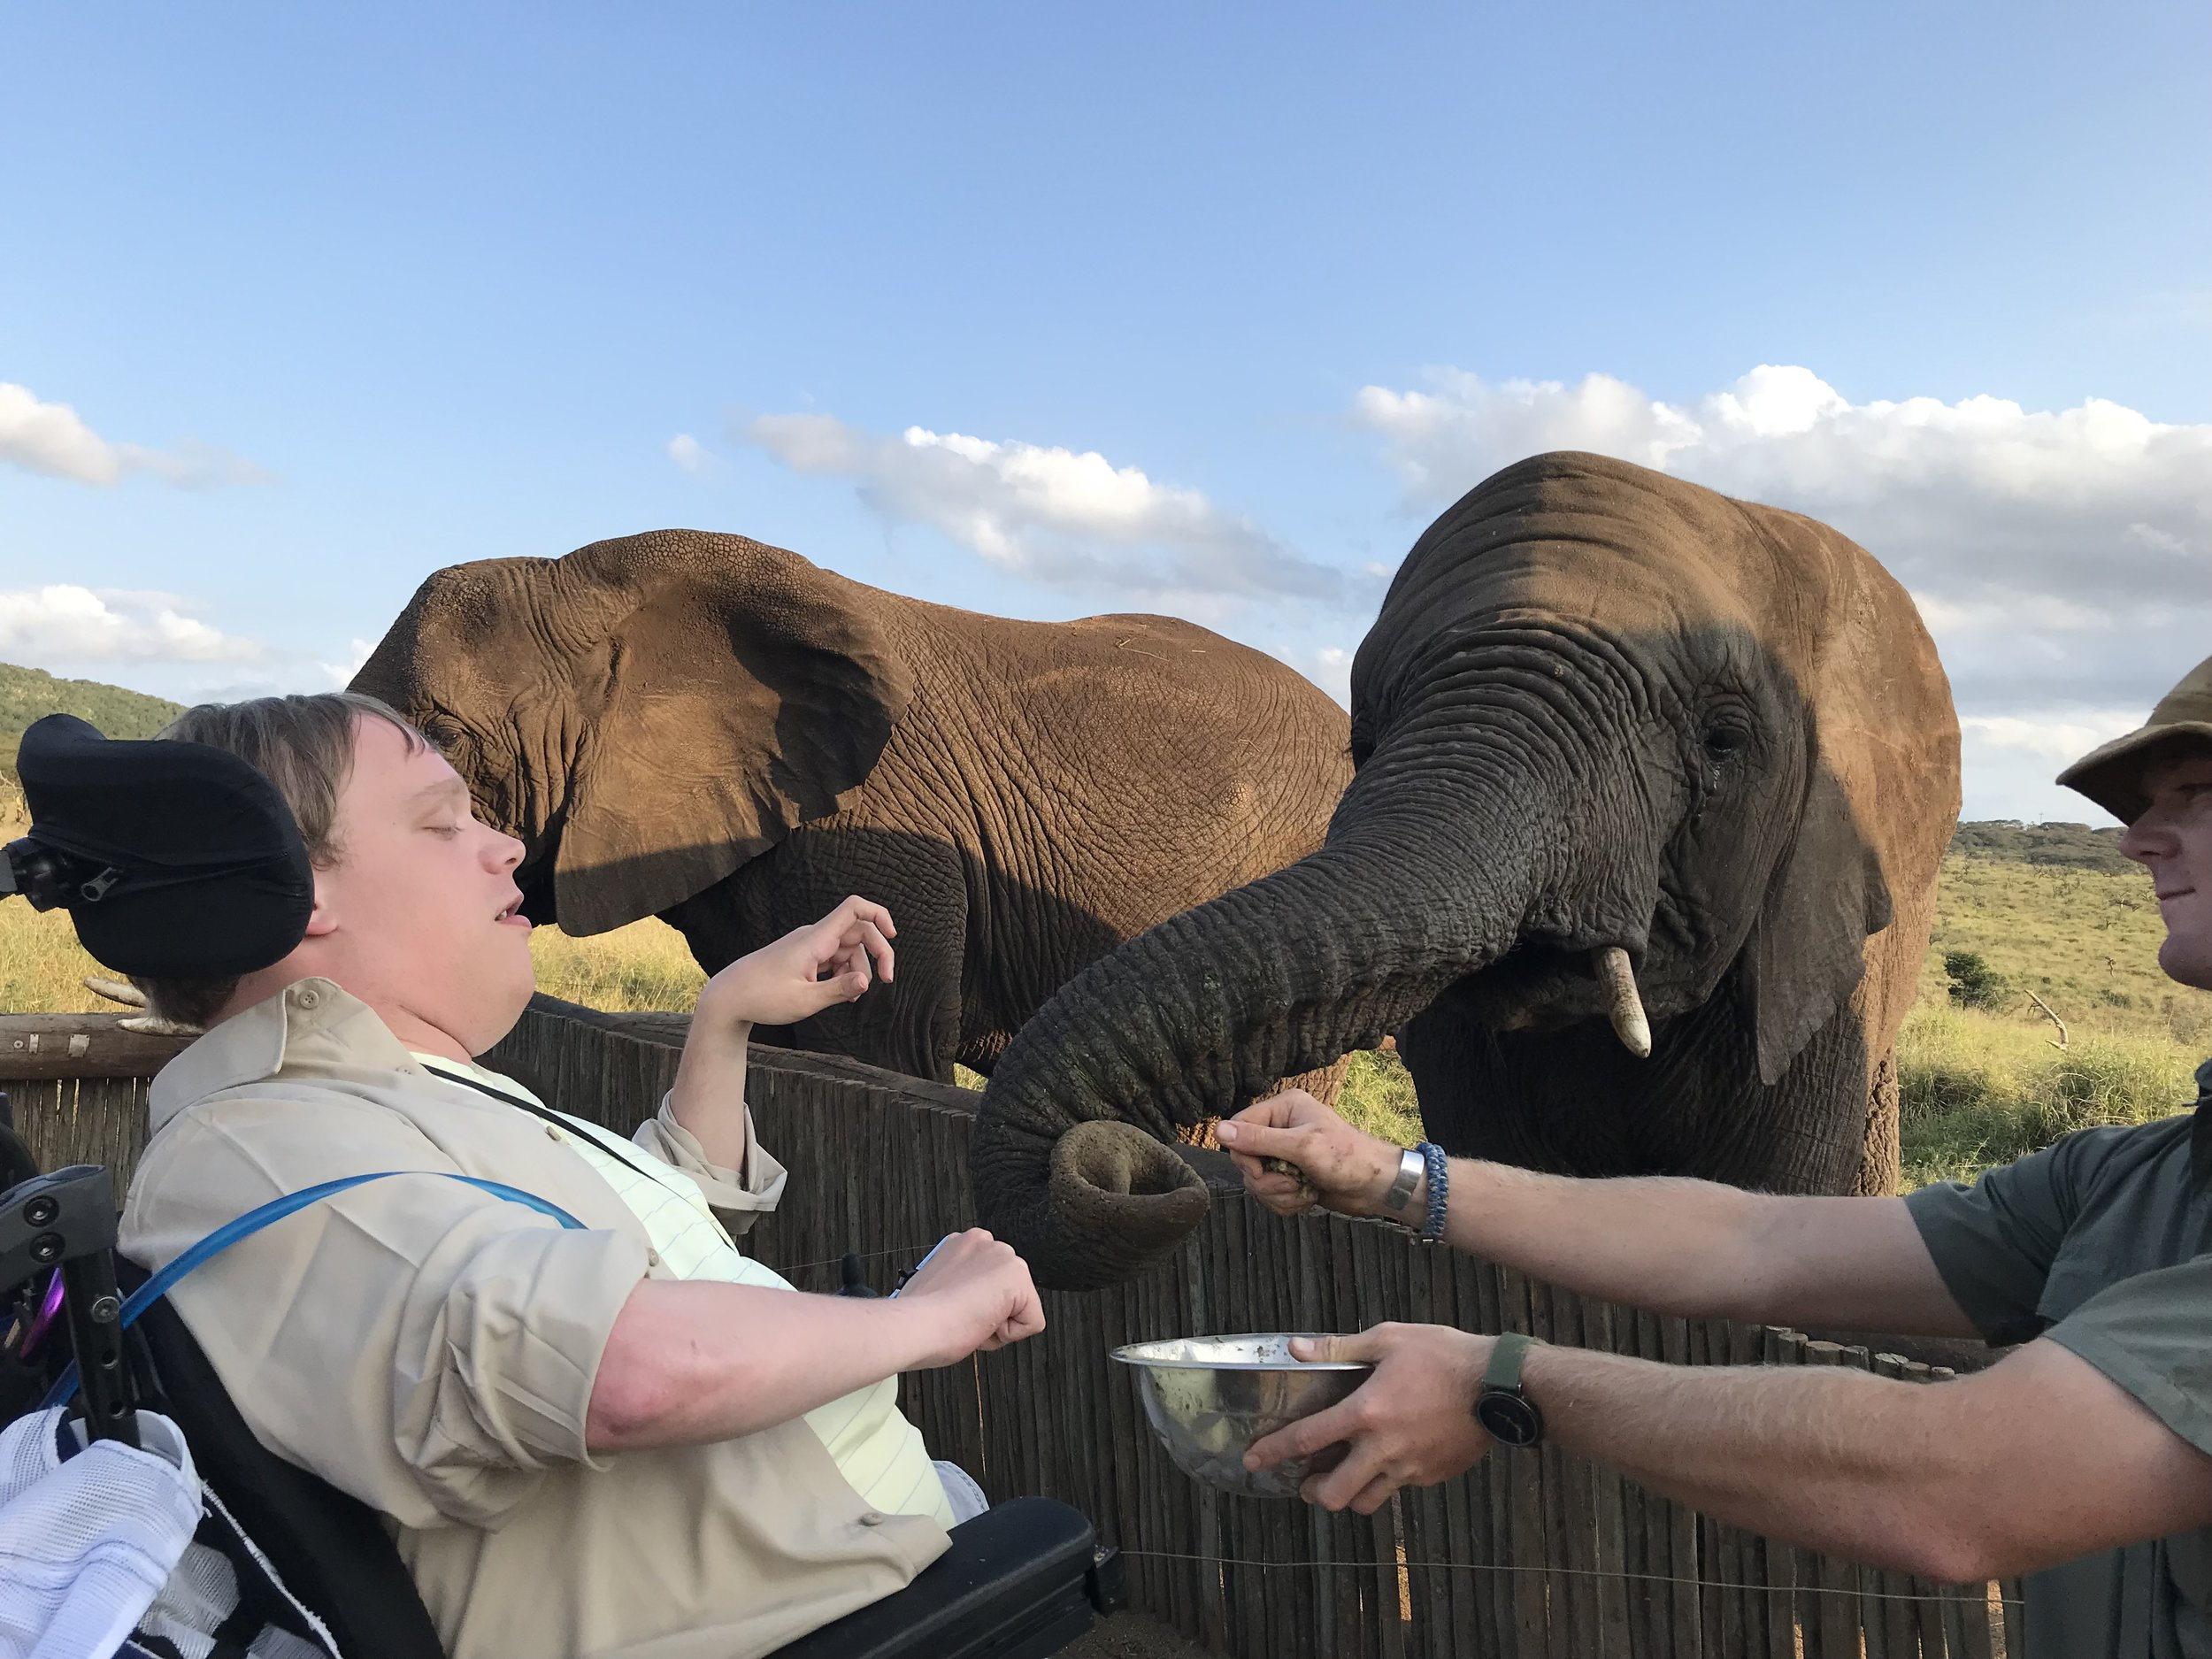 PHOTO: One last picture.  Here is Matthew In South Africa In his wheelchair feeding some elephants some lunch.